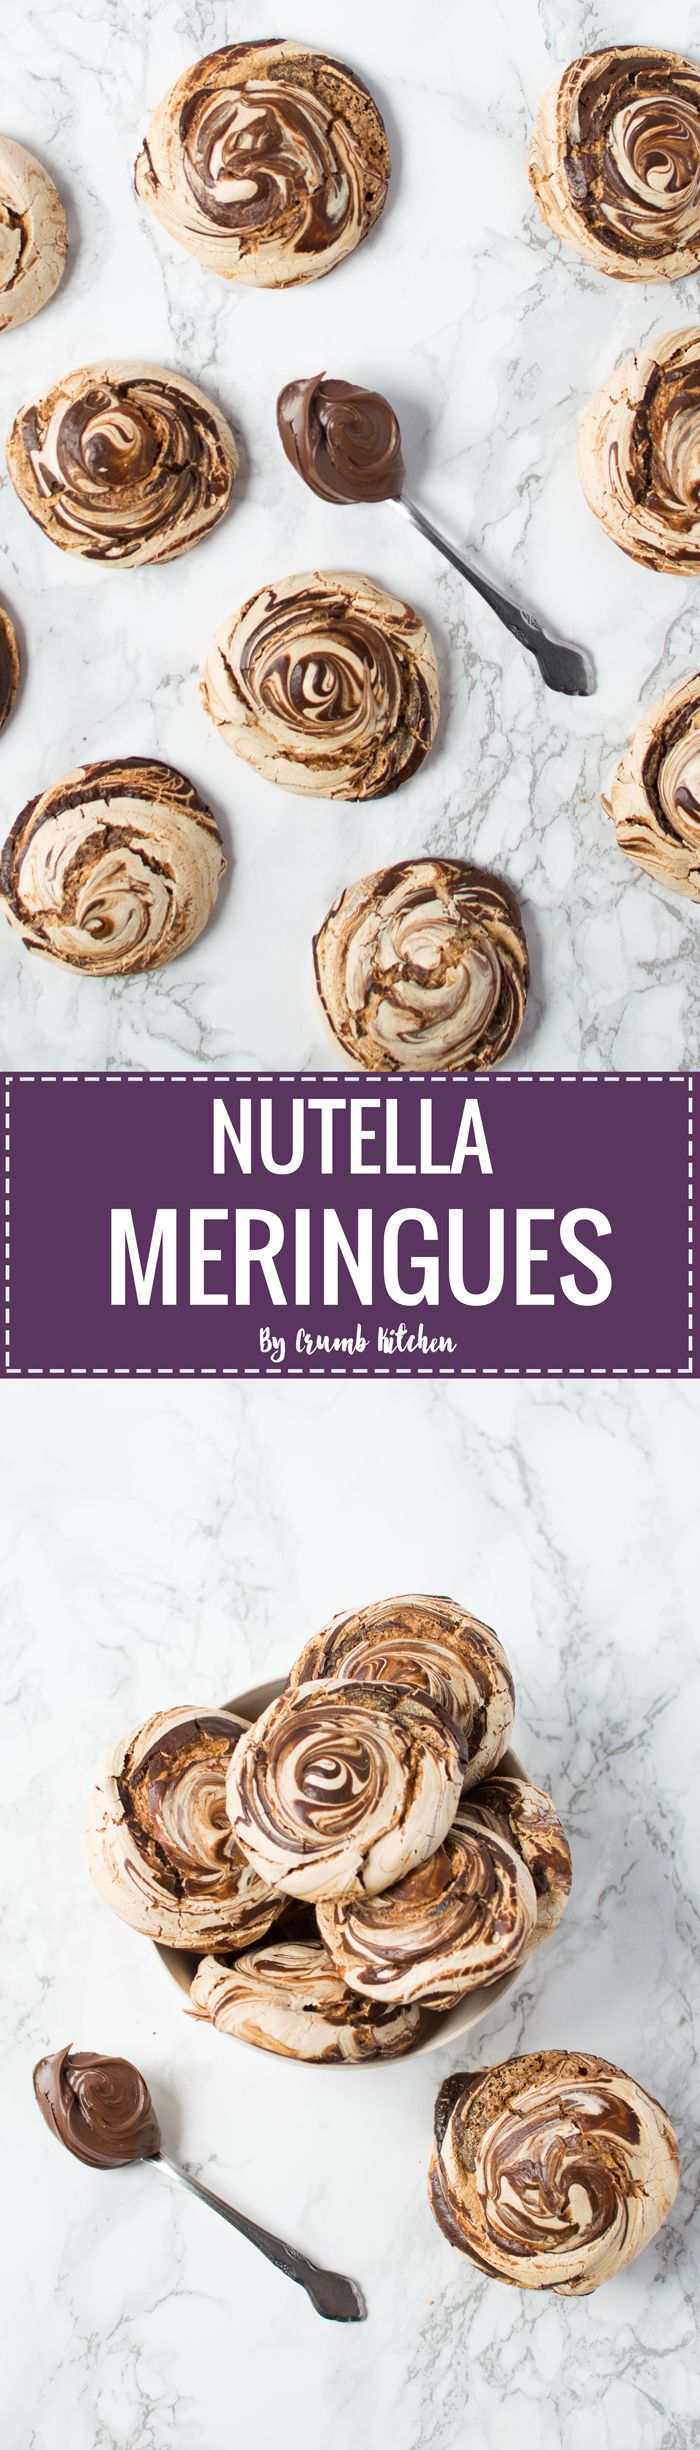 Pillowy clouds of sweet meringue swirled with warm melted Nutella create a beautiful, elegant treat. | crumbkitchen.com